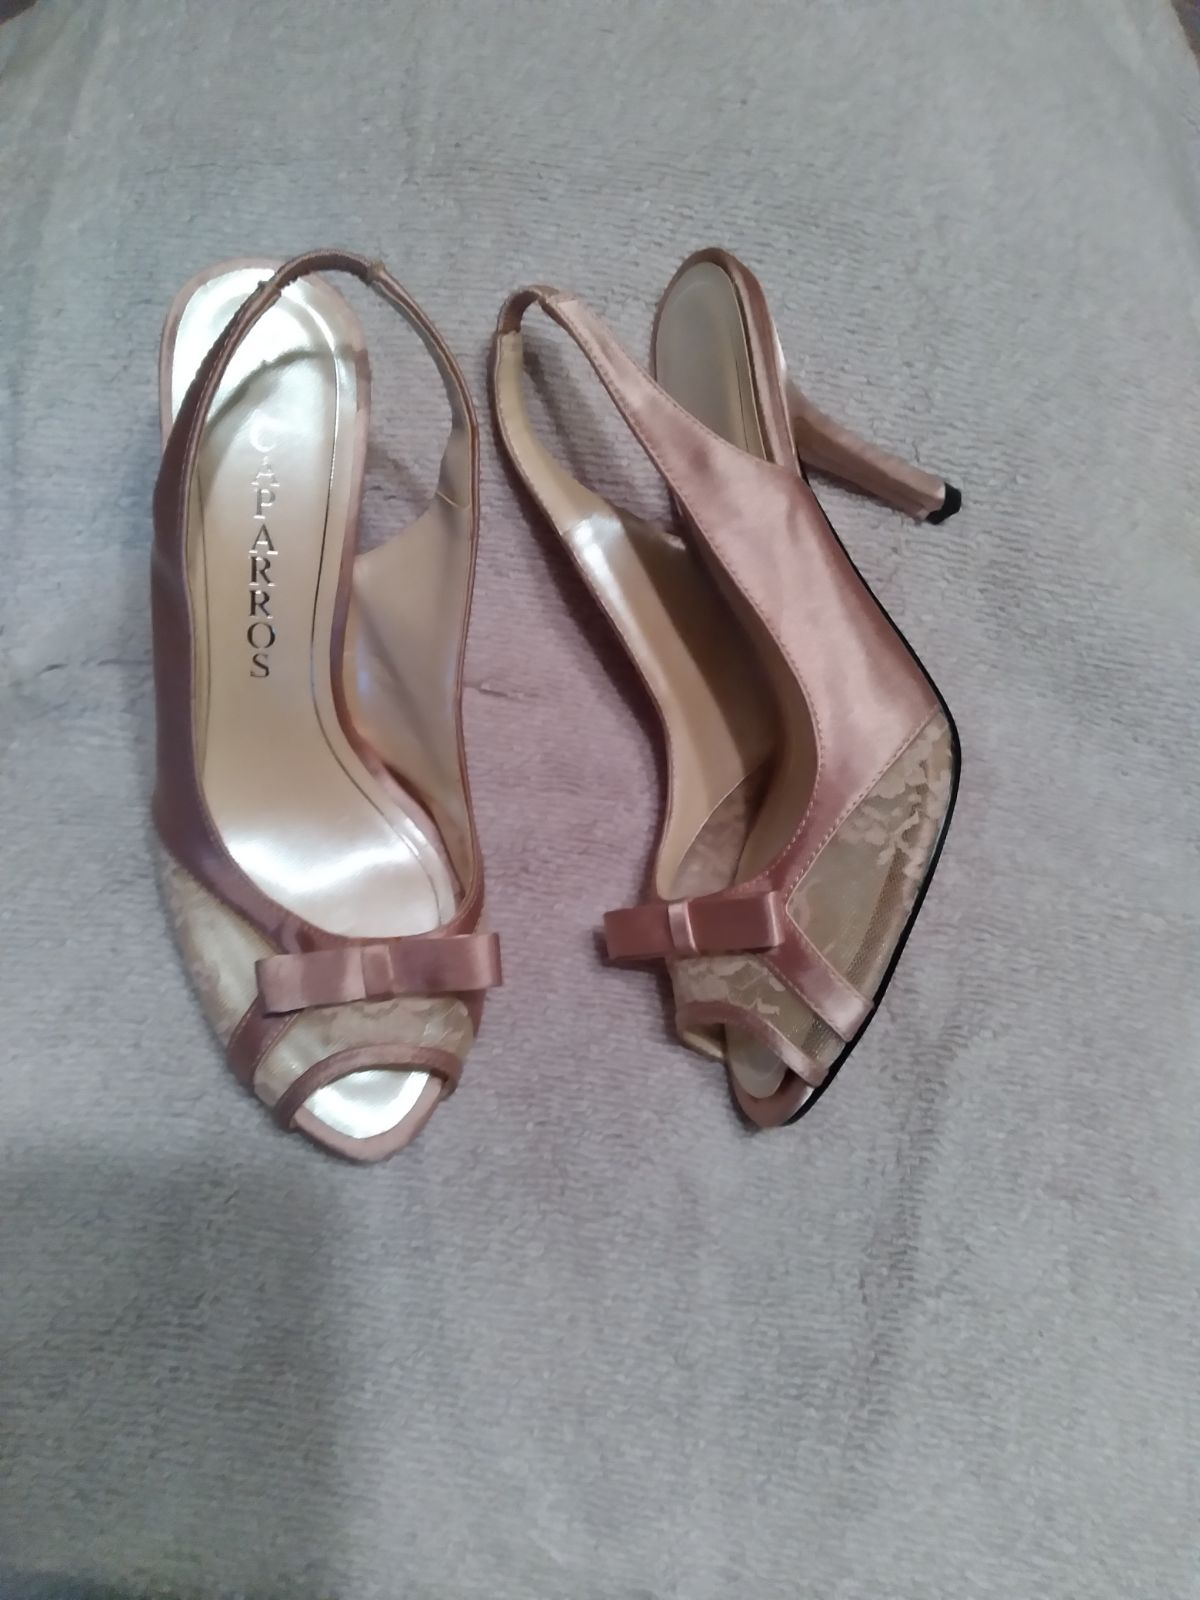 Lace and satin heels size 6.5 also avail